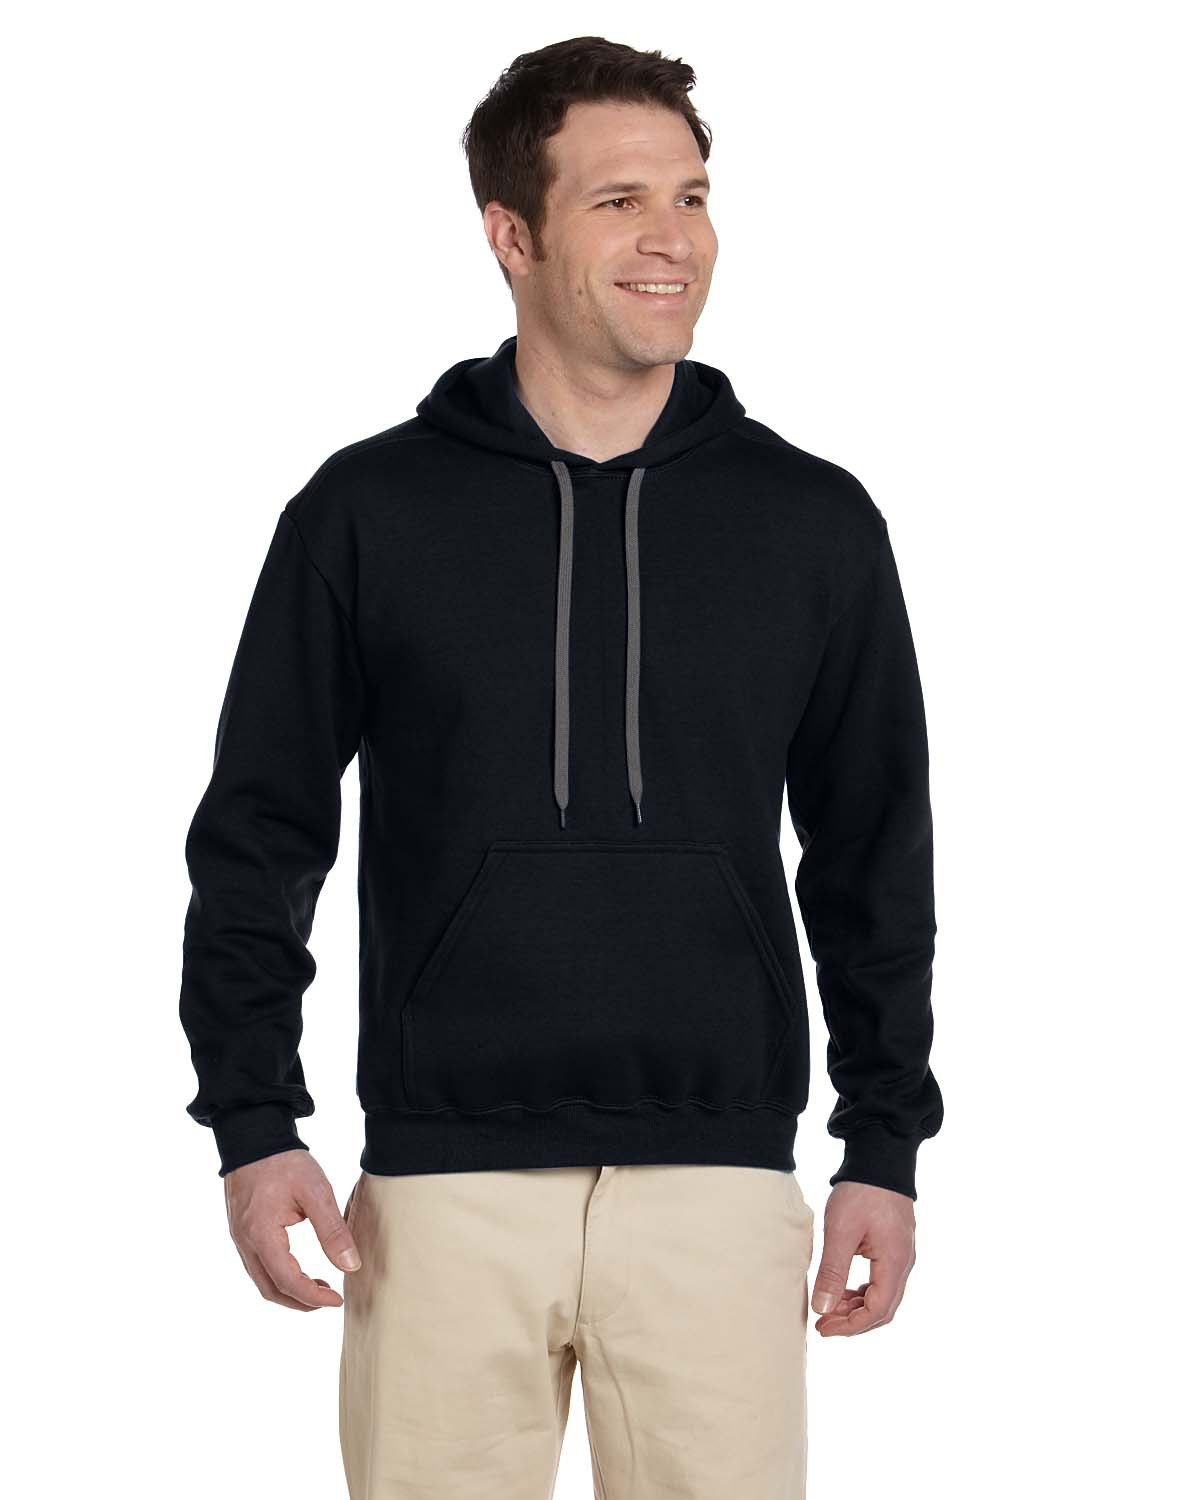 Gildan - G925 - Adult Premium Cotton® 9 oz. Ringspun Hooded Sweatshirt